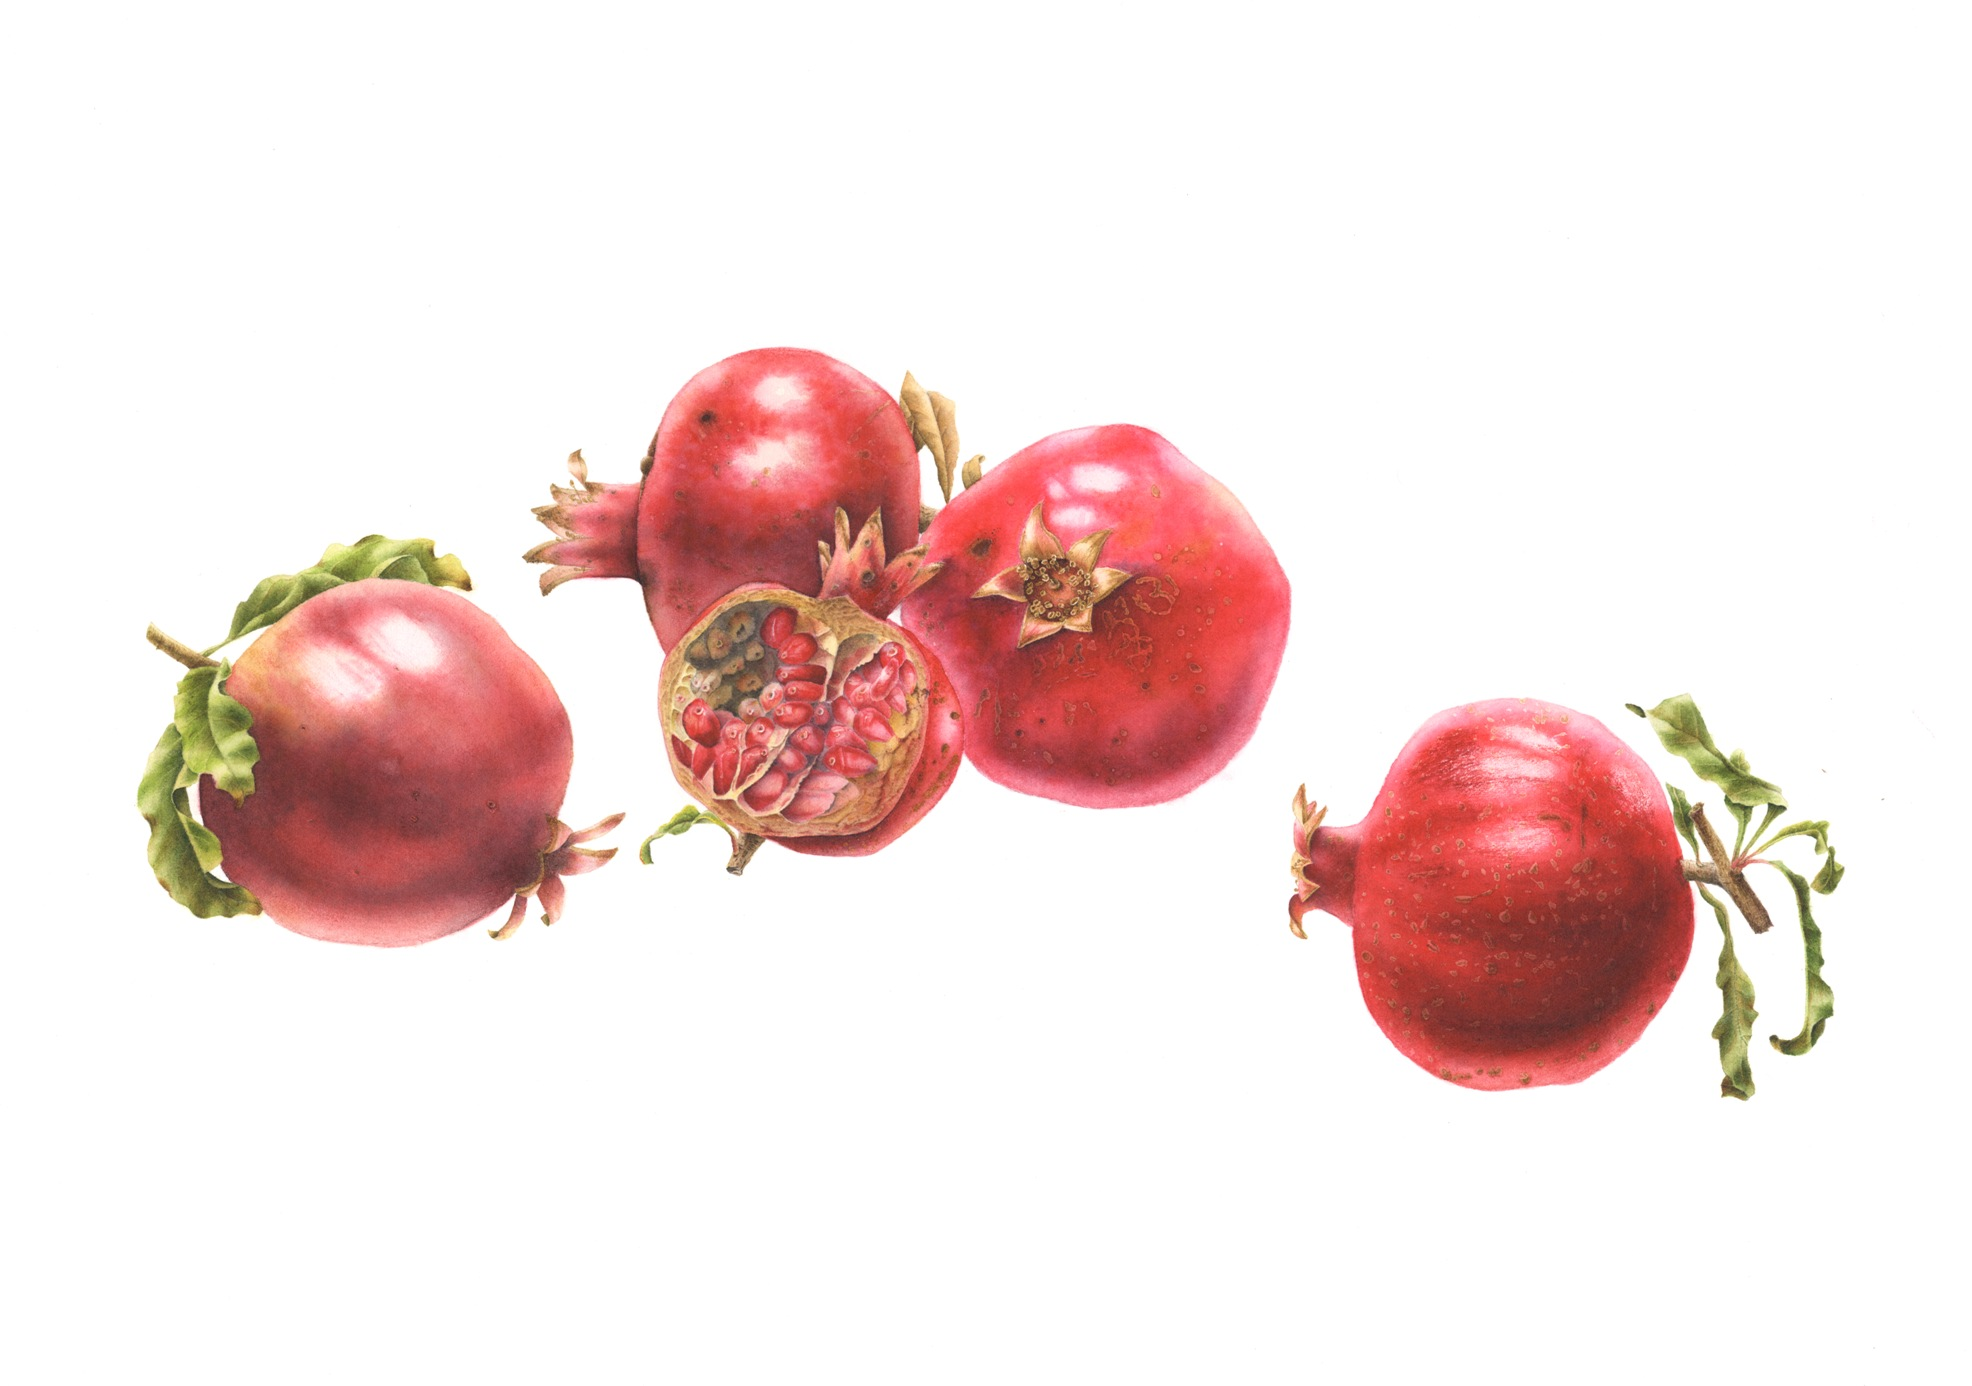 Pomegranate Group